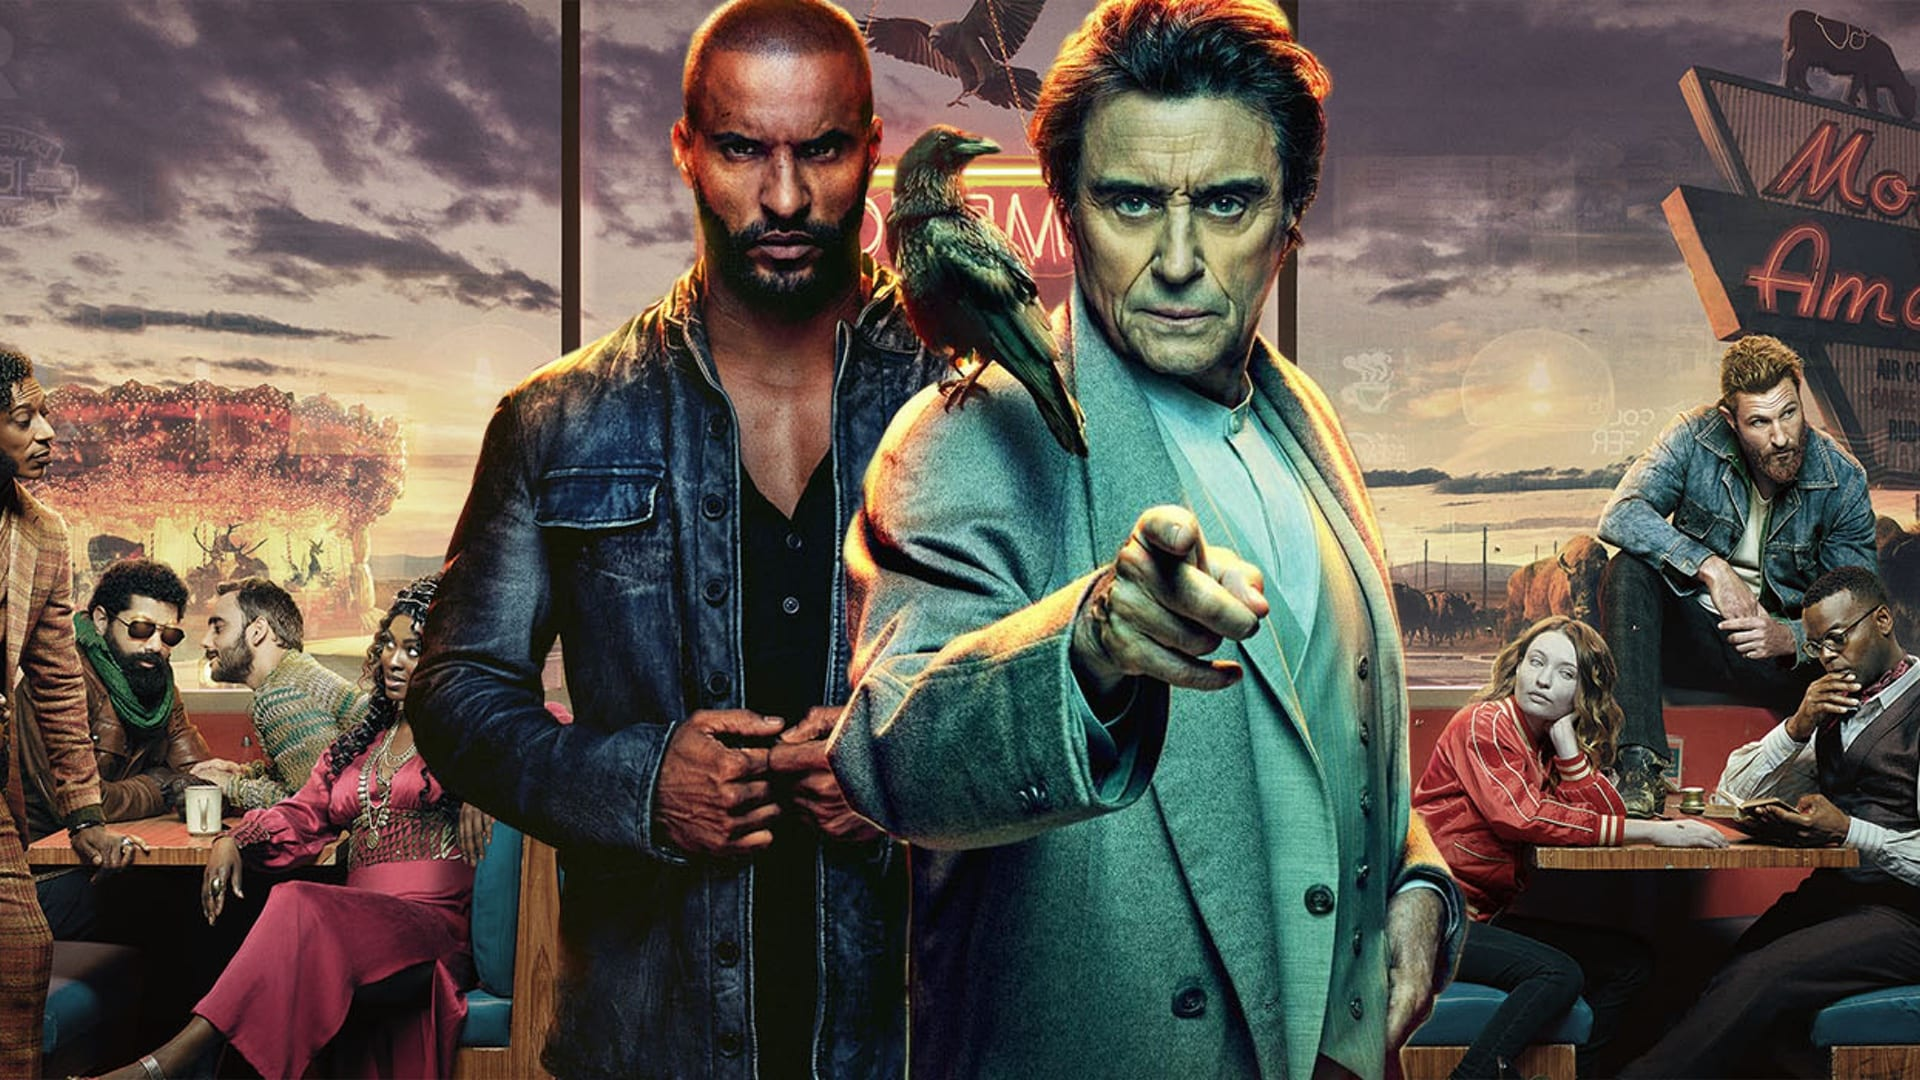 American Gods Season 3 Episode 9